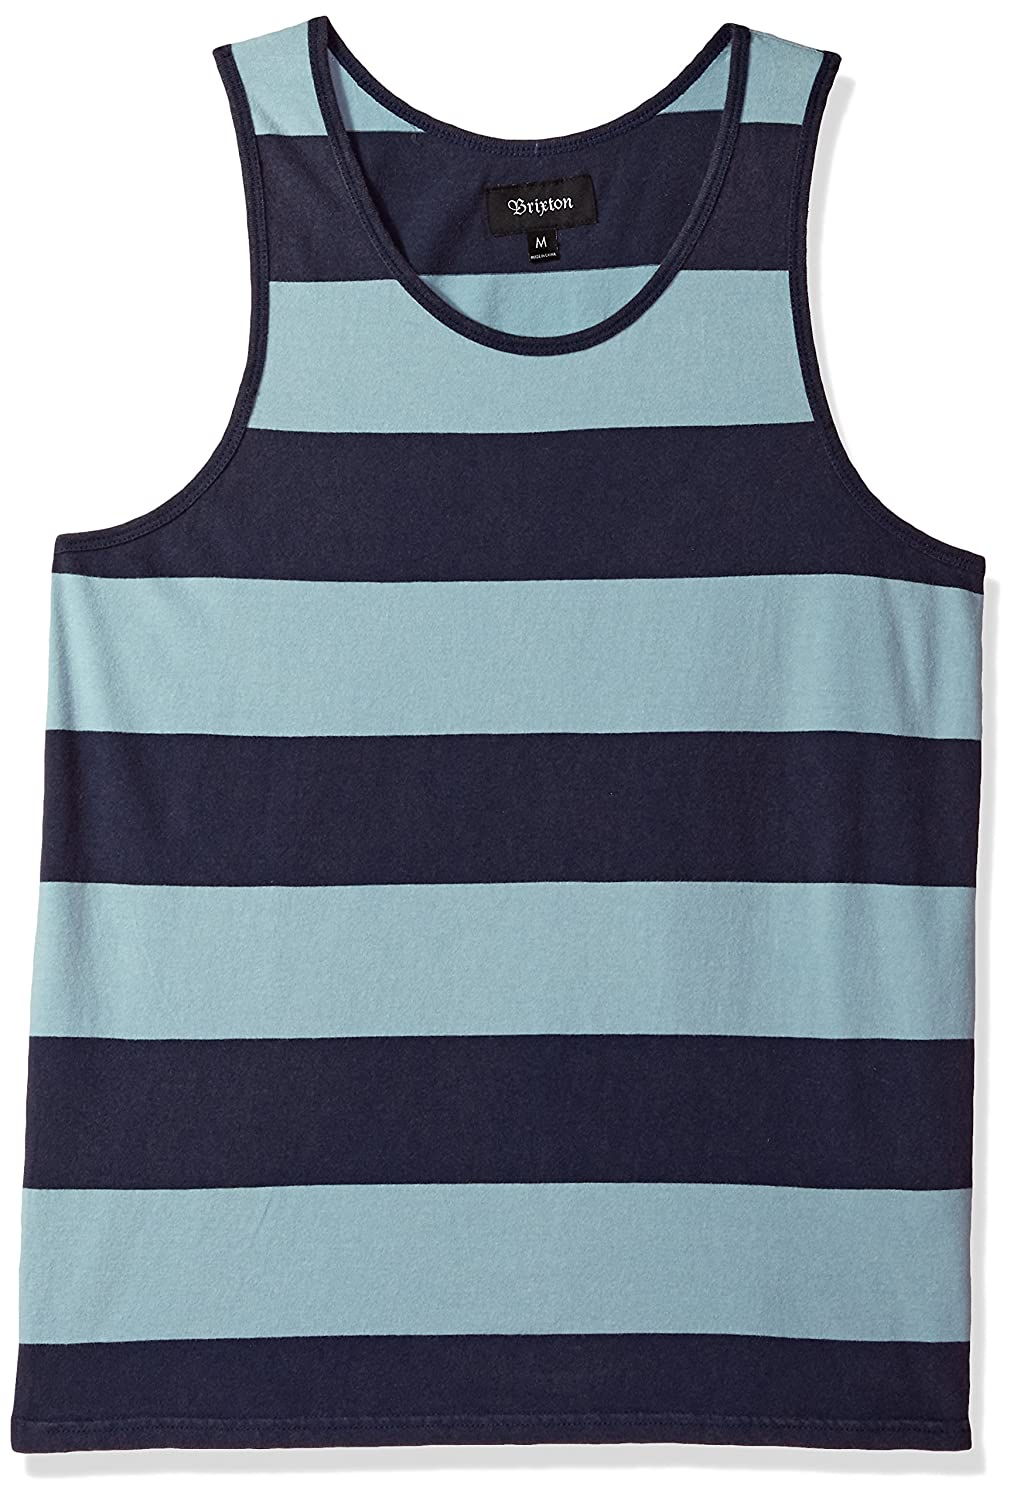 Brixton Men's Corwin Tailored Fit Washed Tank Top 2436